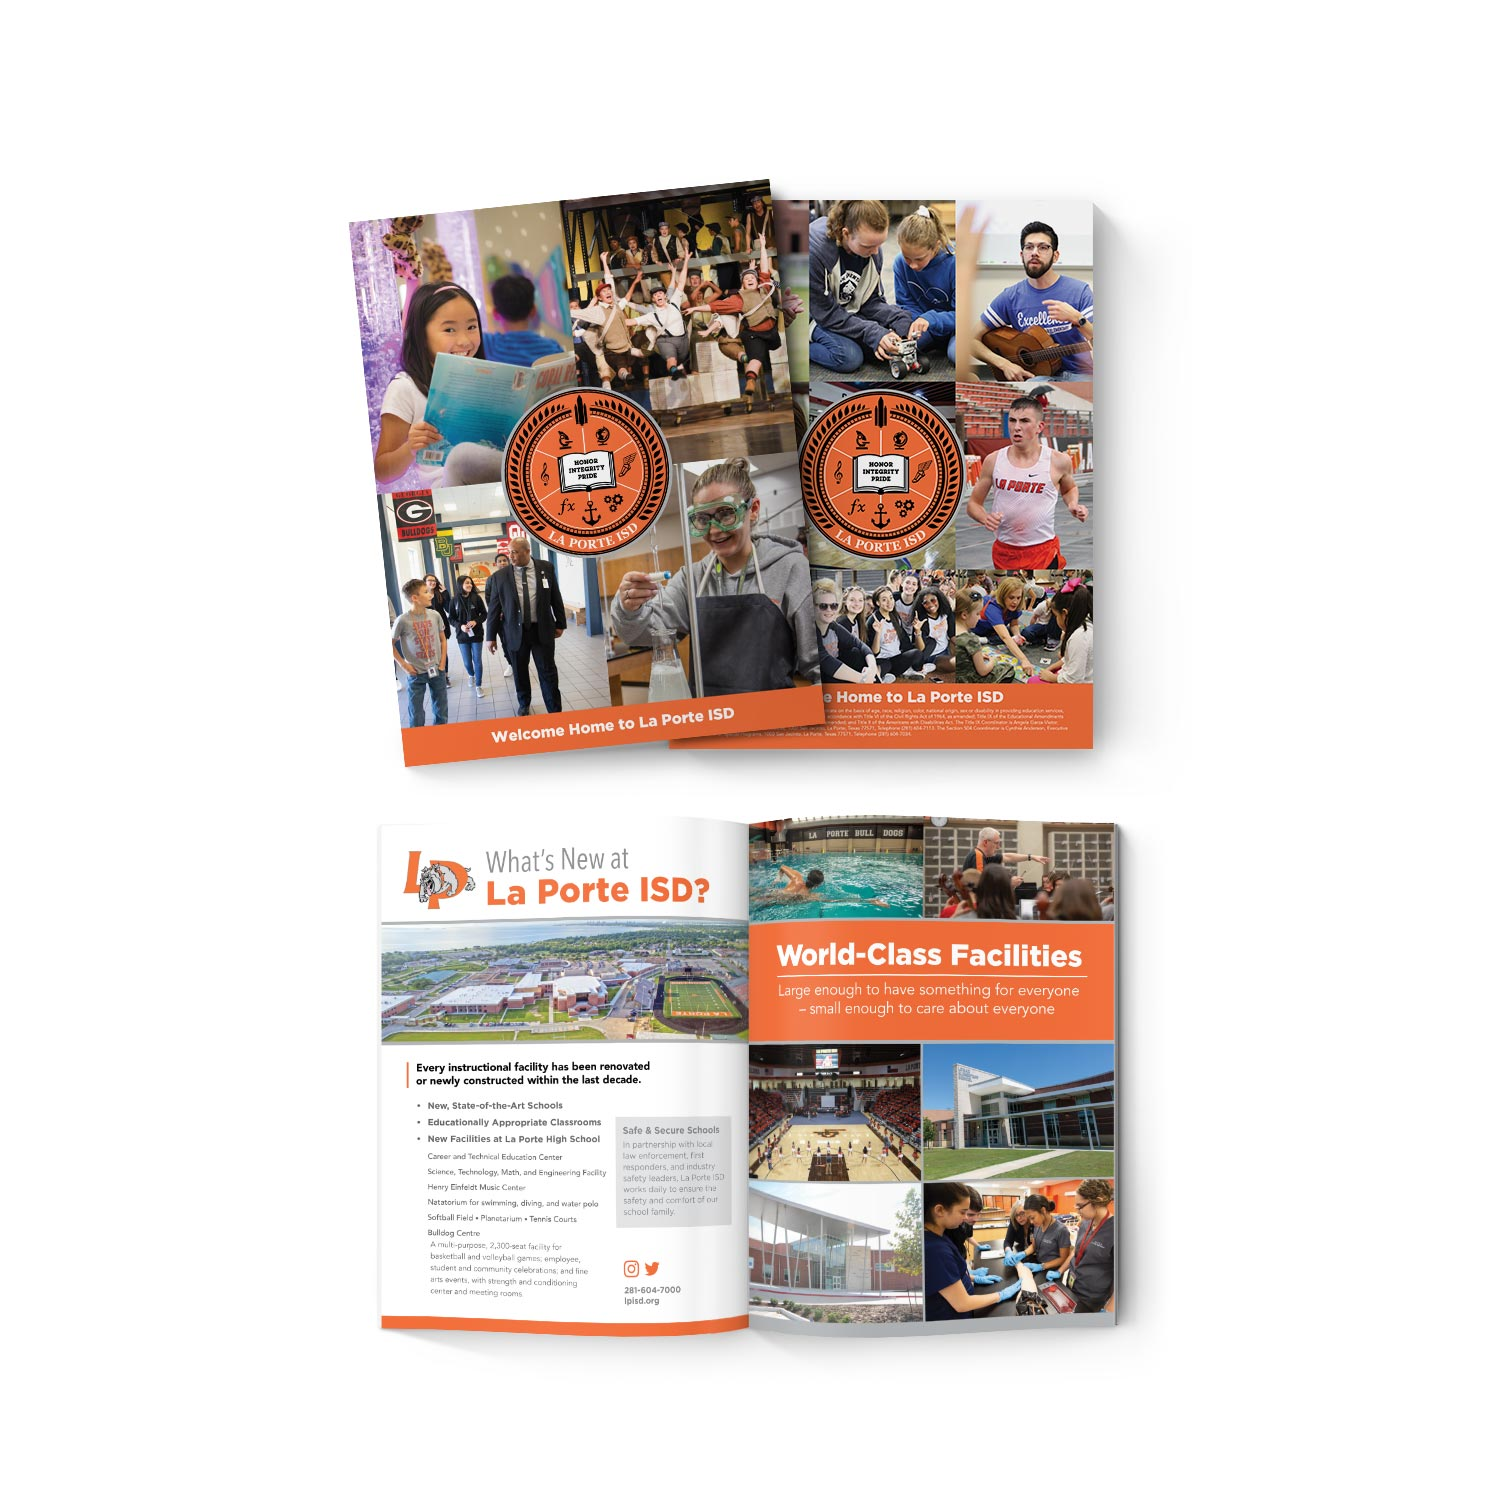 New Branding and Marketing Collateral and Brochure for La Porte ISD.